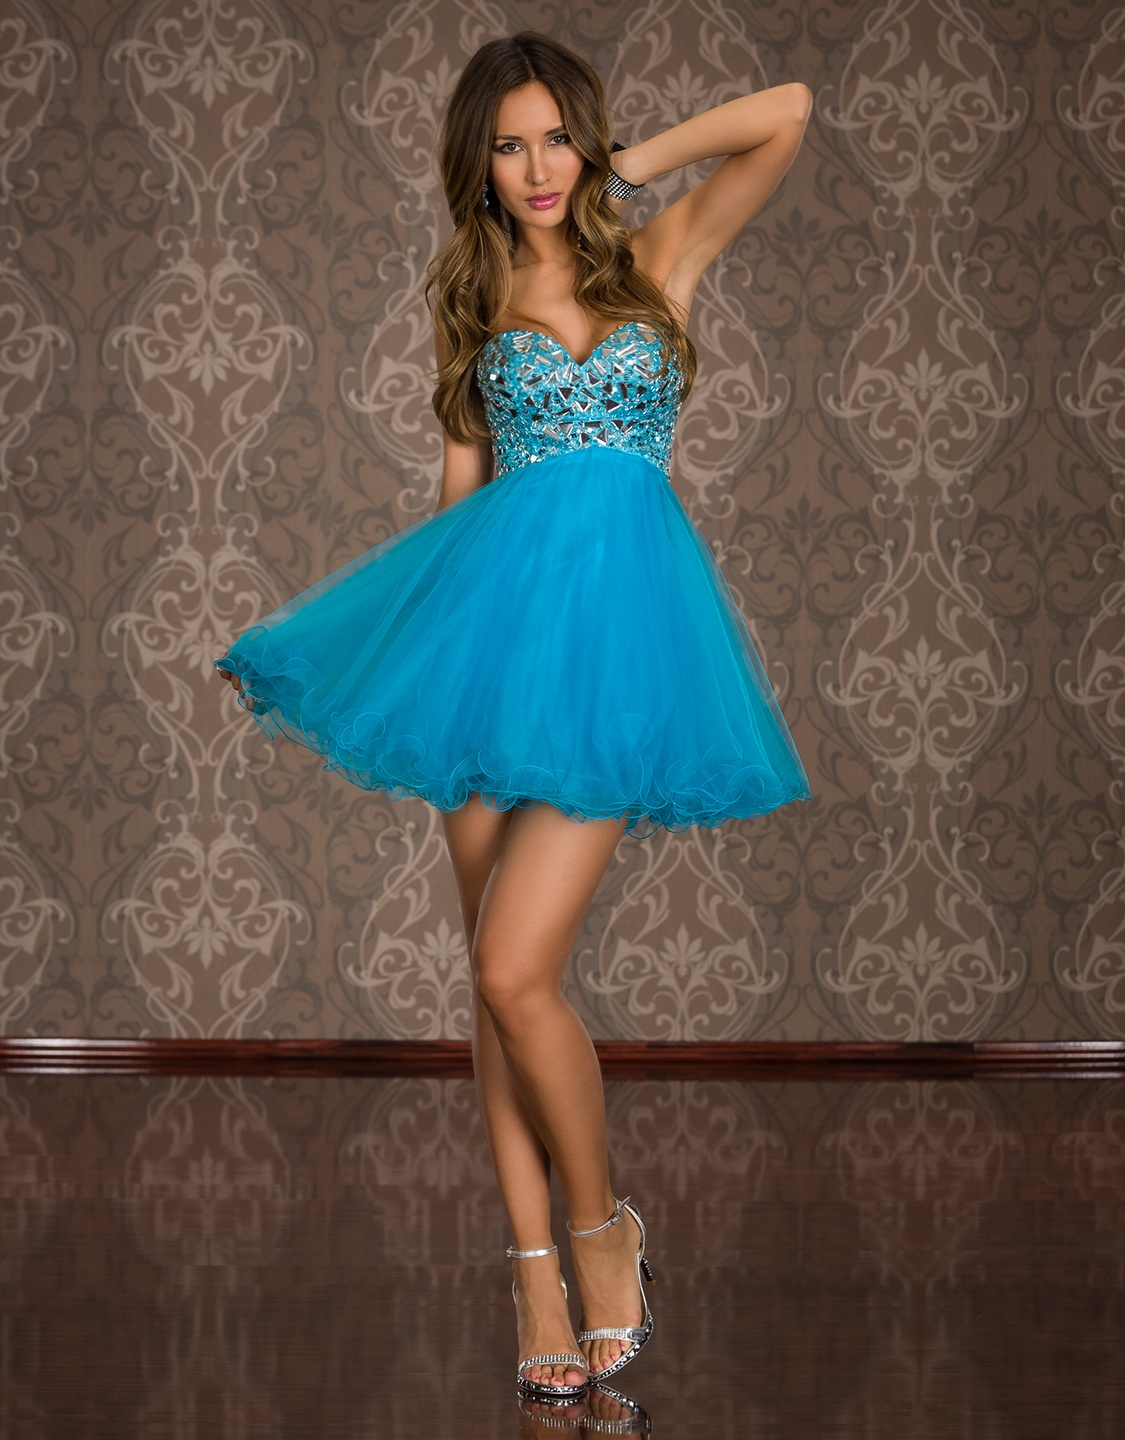 Blue Strapless Prom Evening Dress With Puffy Skirt